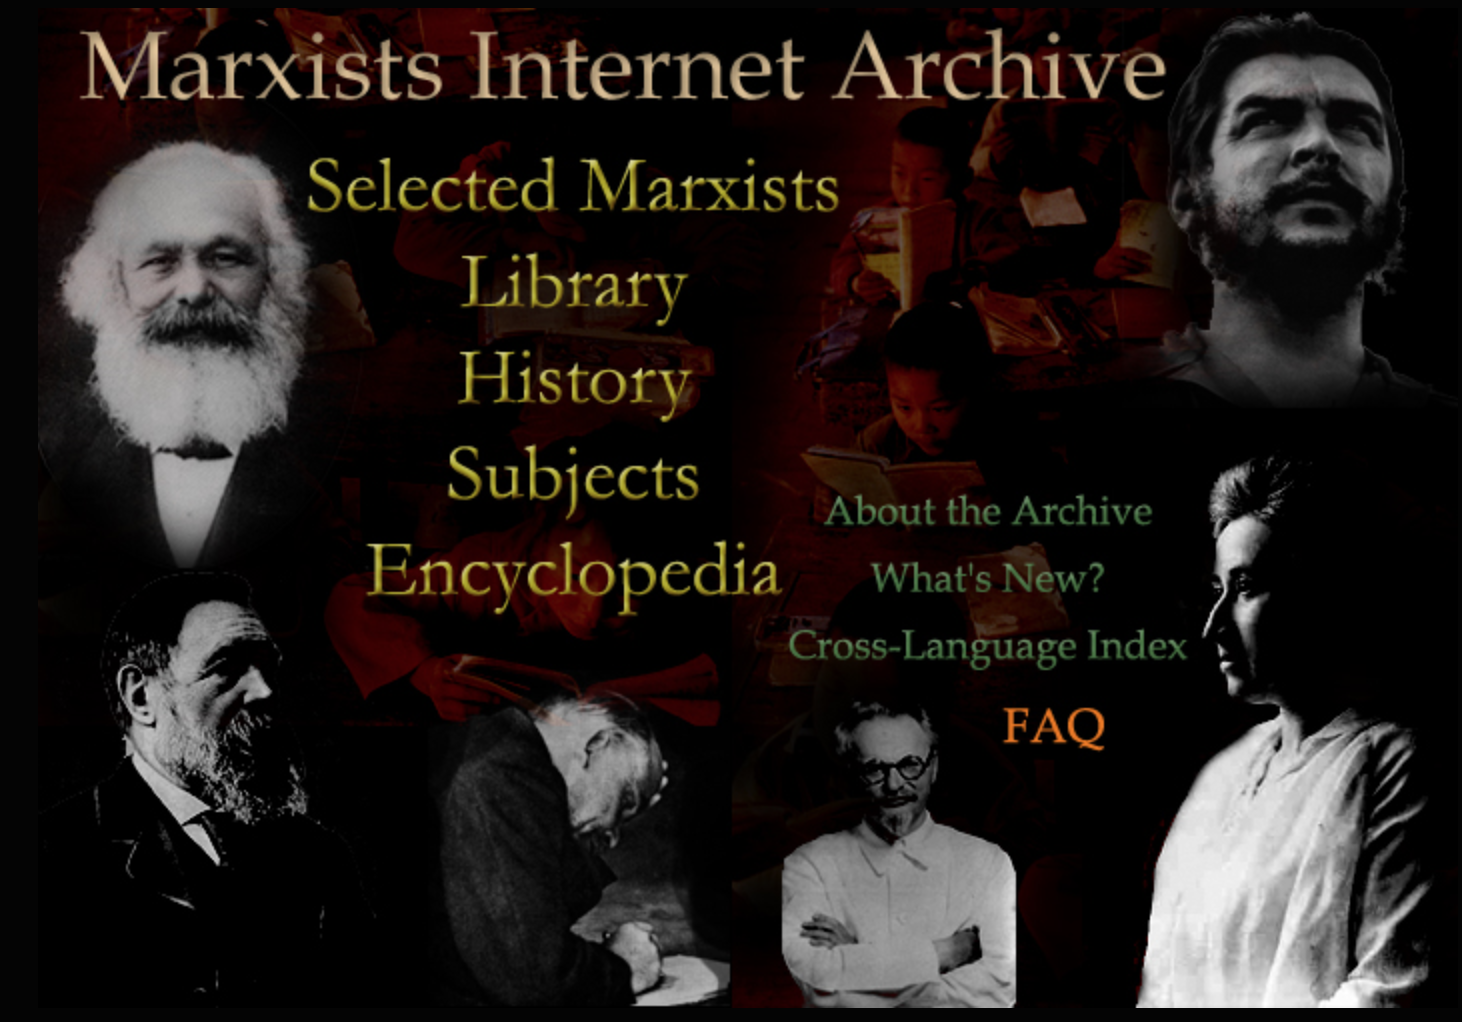 Homepage of Marxist Archive shows images of Karl Marx and other Marxists with a menu